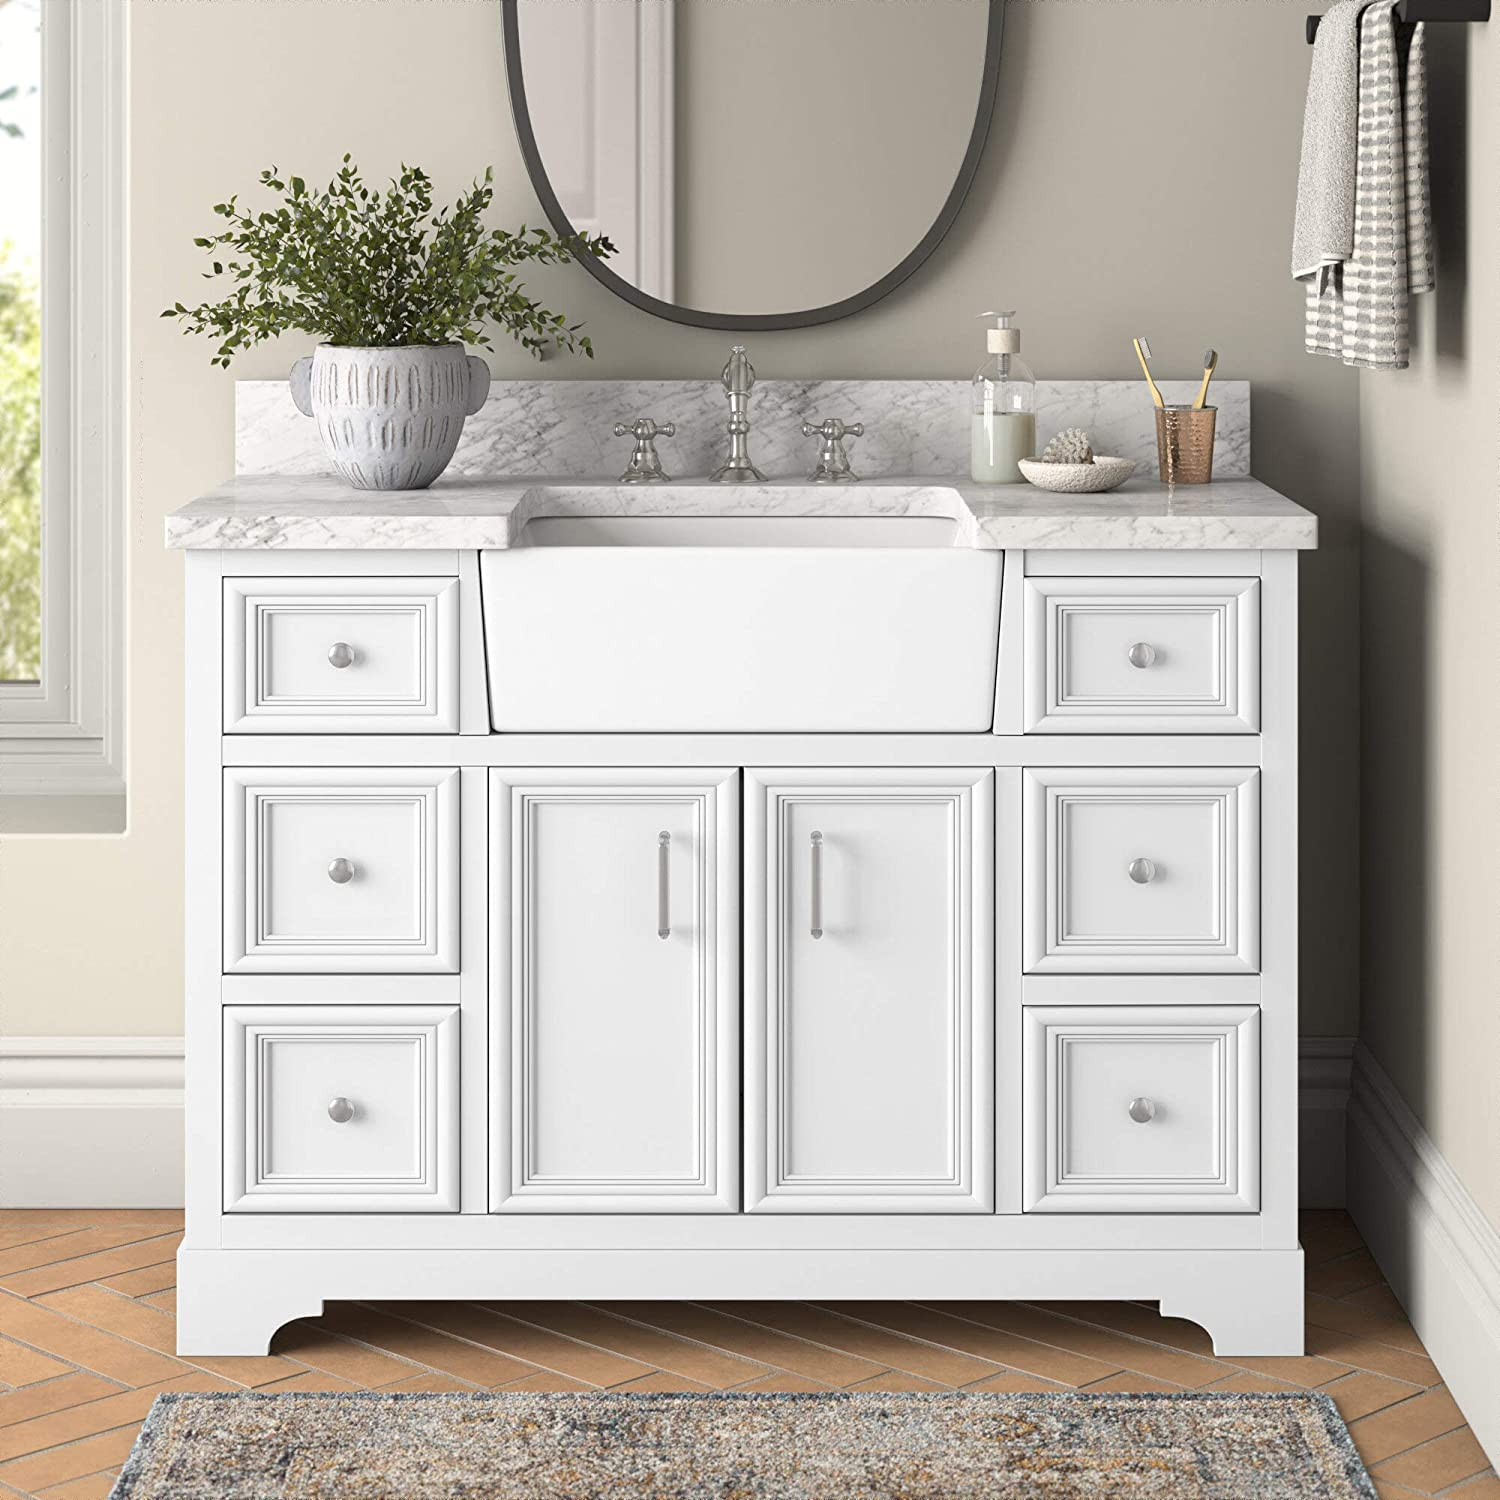 Buy Zelda 48 Inch Bathroom Vanity Carrara White Includes White Cabinet With Authentic Italian Carrara Marble Countertop And White Ceramic Farmhouse Apron Sink Online In Turkey B07b29kzlg